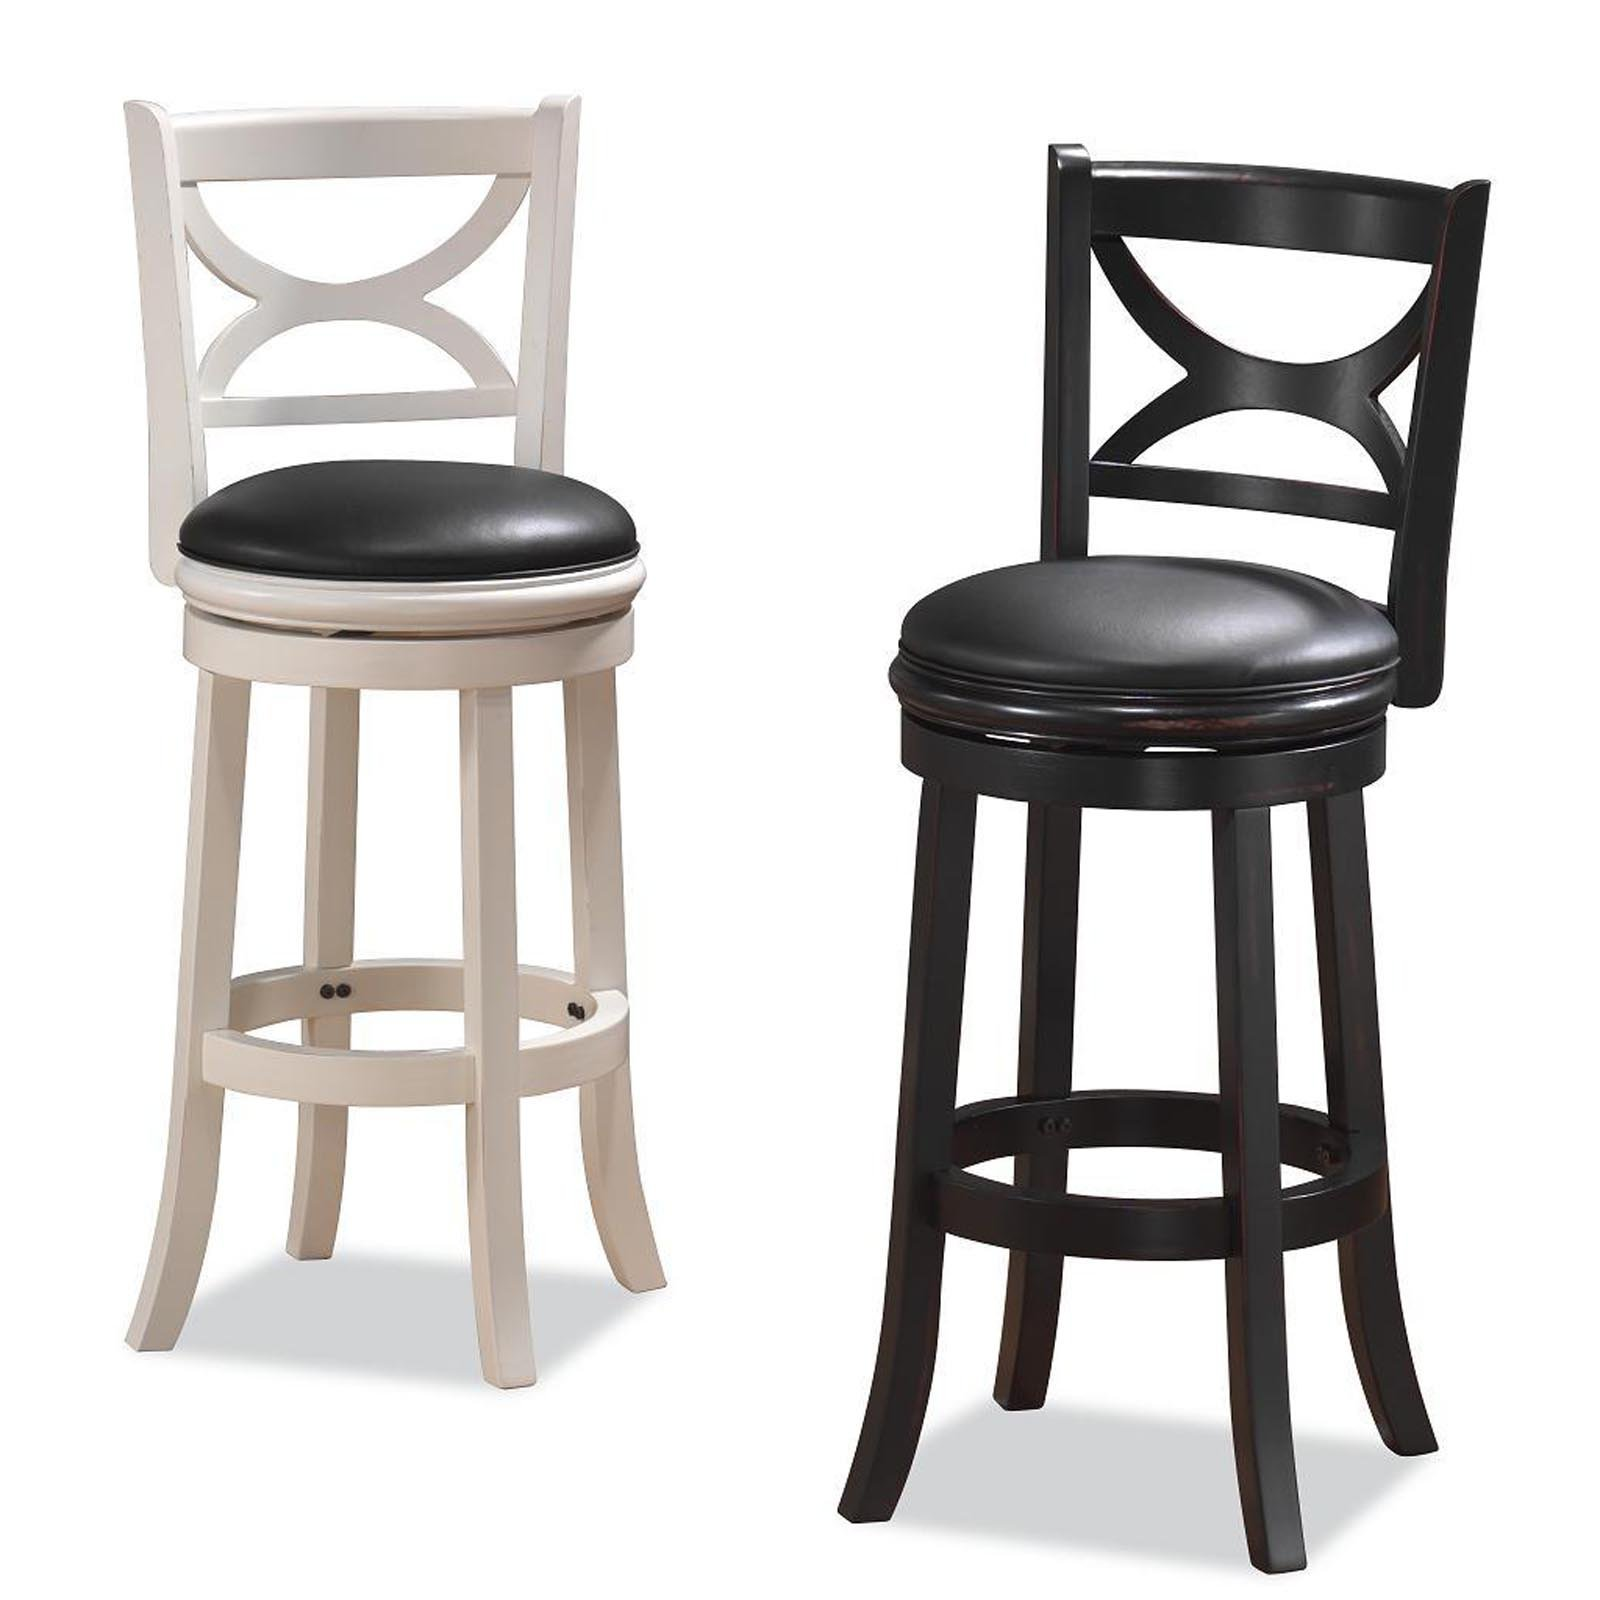 Boraam Florence 24 in. Swivel Counter Stool - Walmart.com